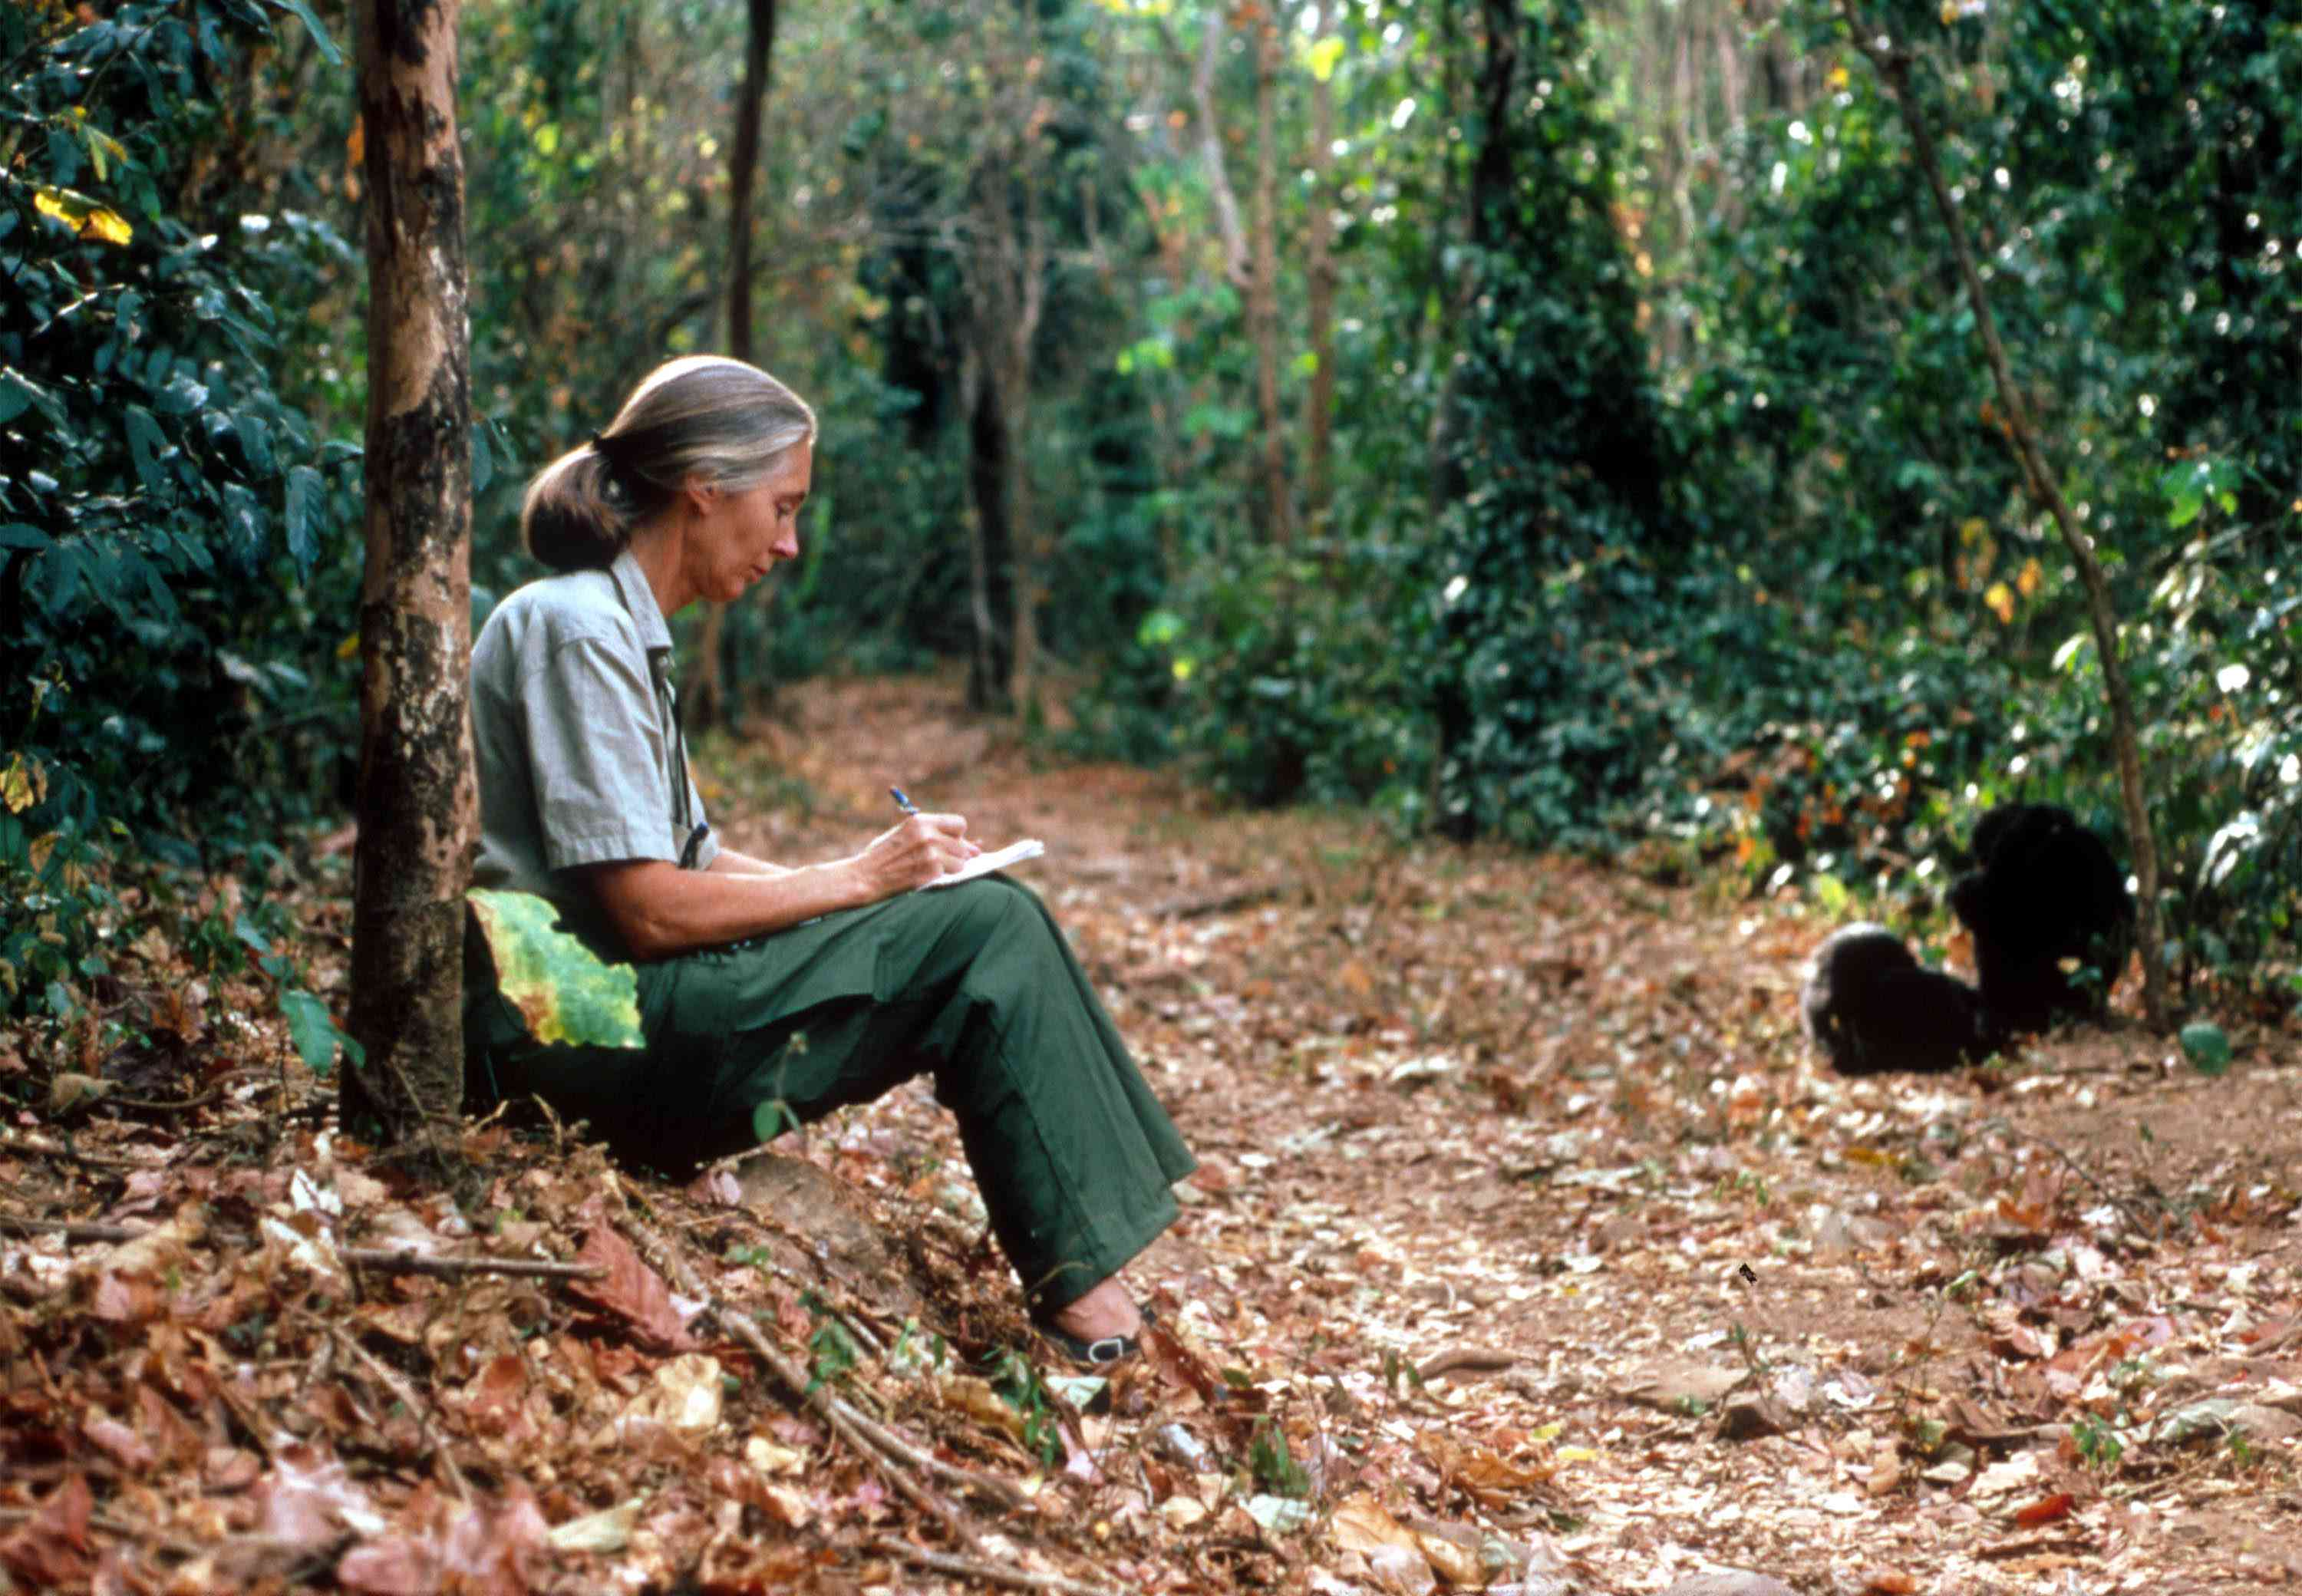 Scientist Jane Goodall studying the behavior of young chimps